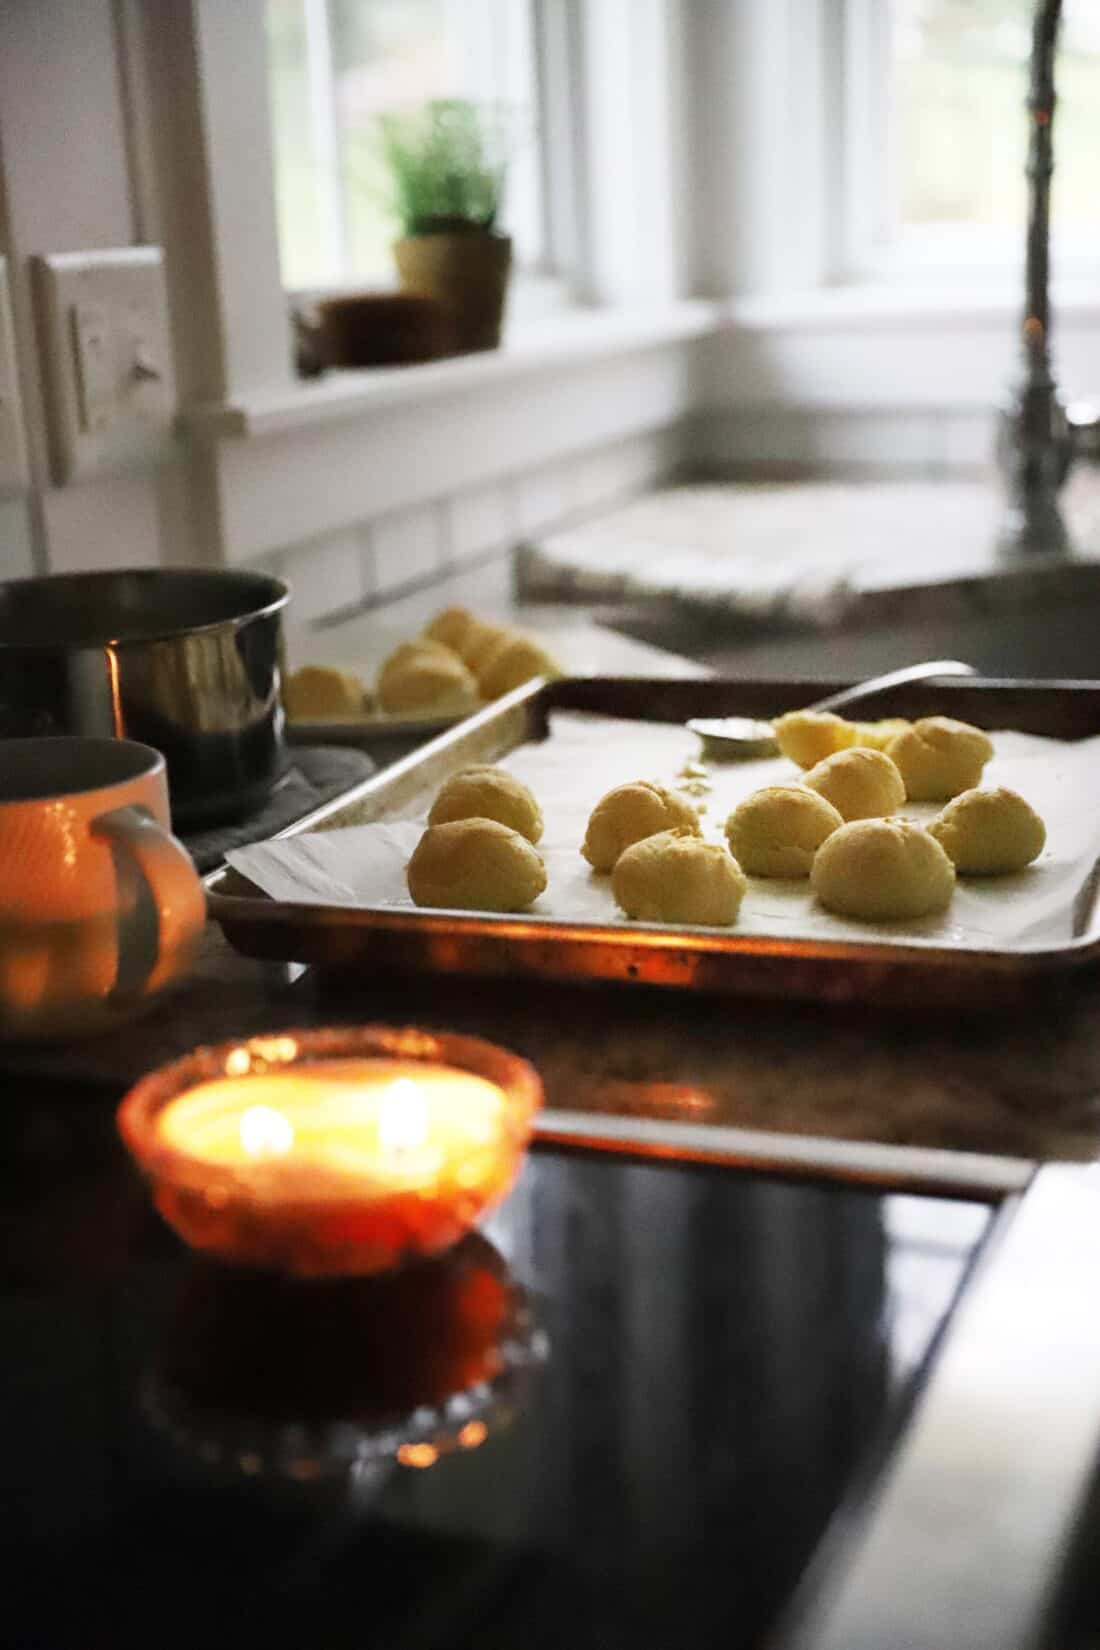 unfilled cream puffs cooling in a cottage kitchen